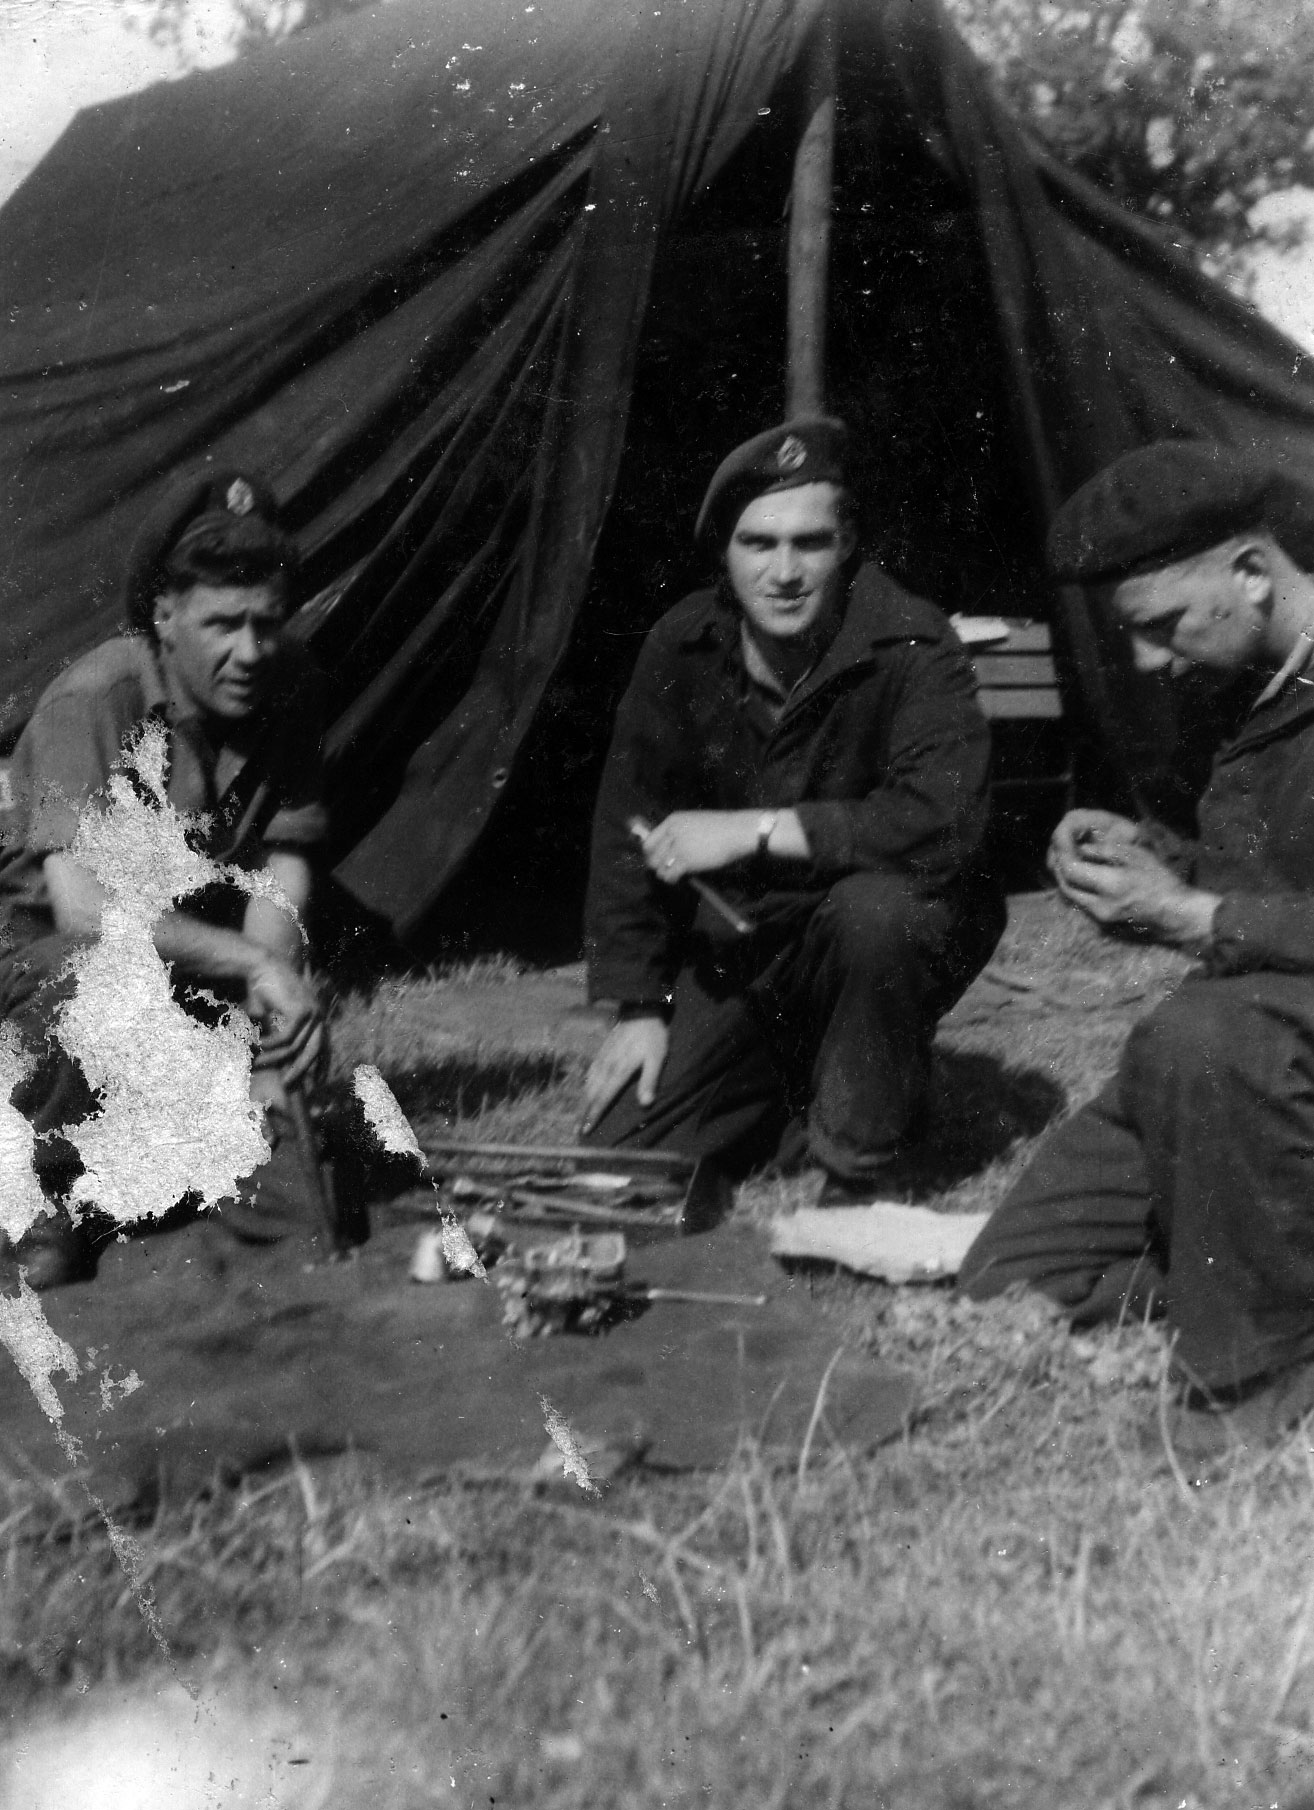 A photo of 3 men on a training exercise in England.